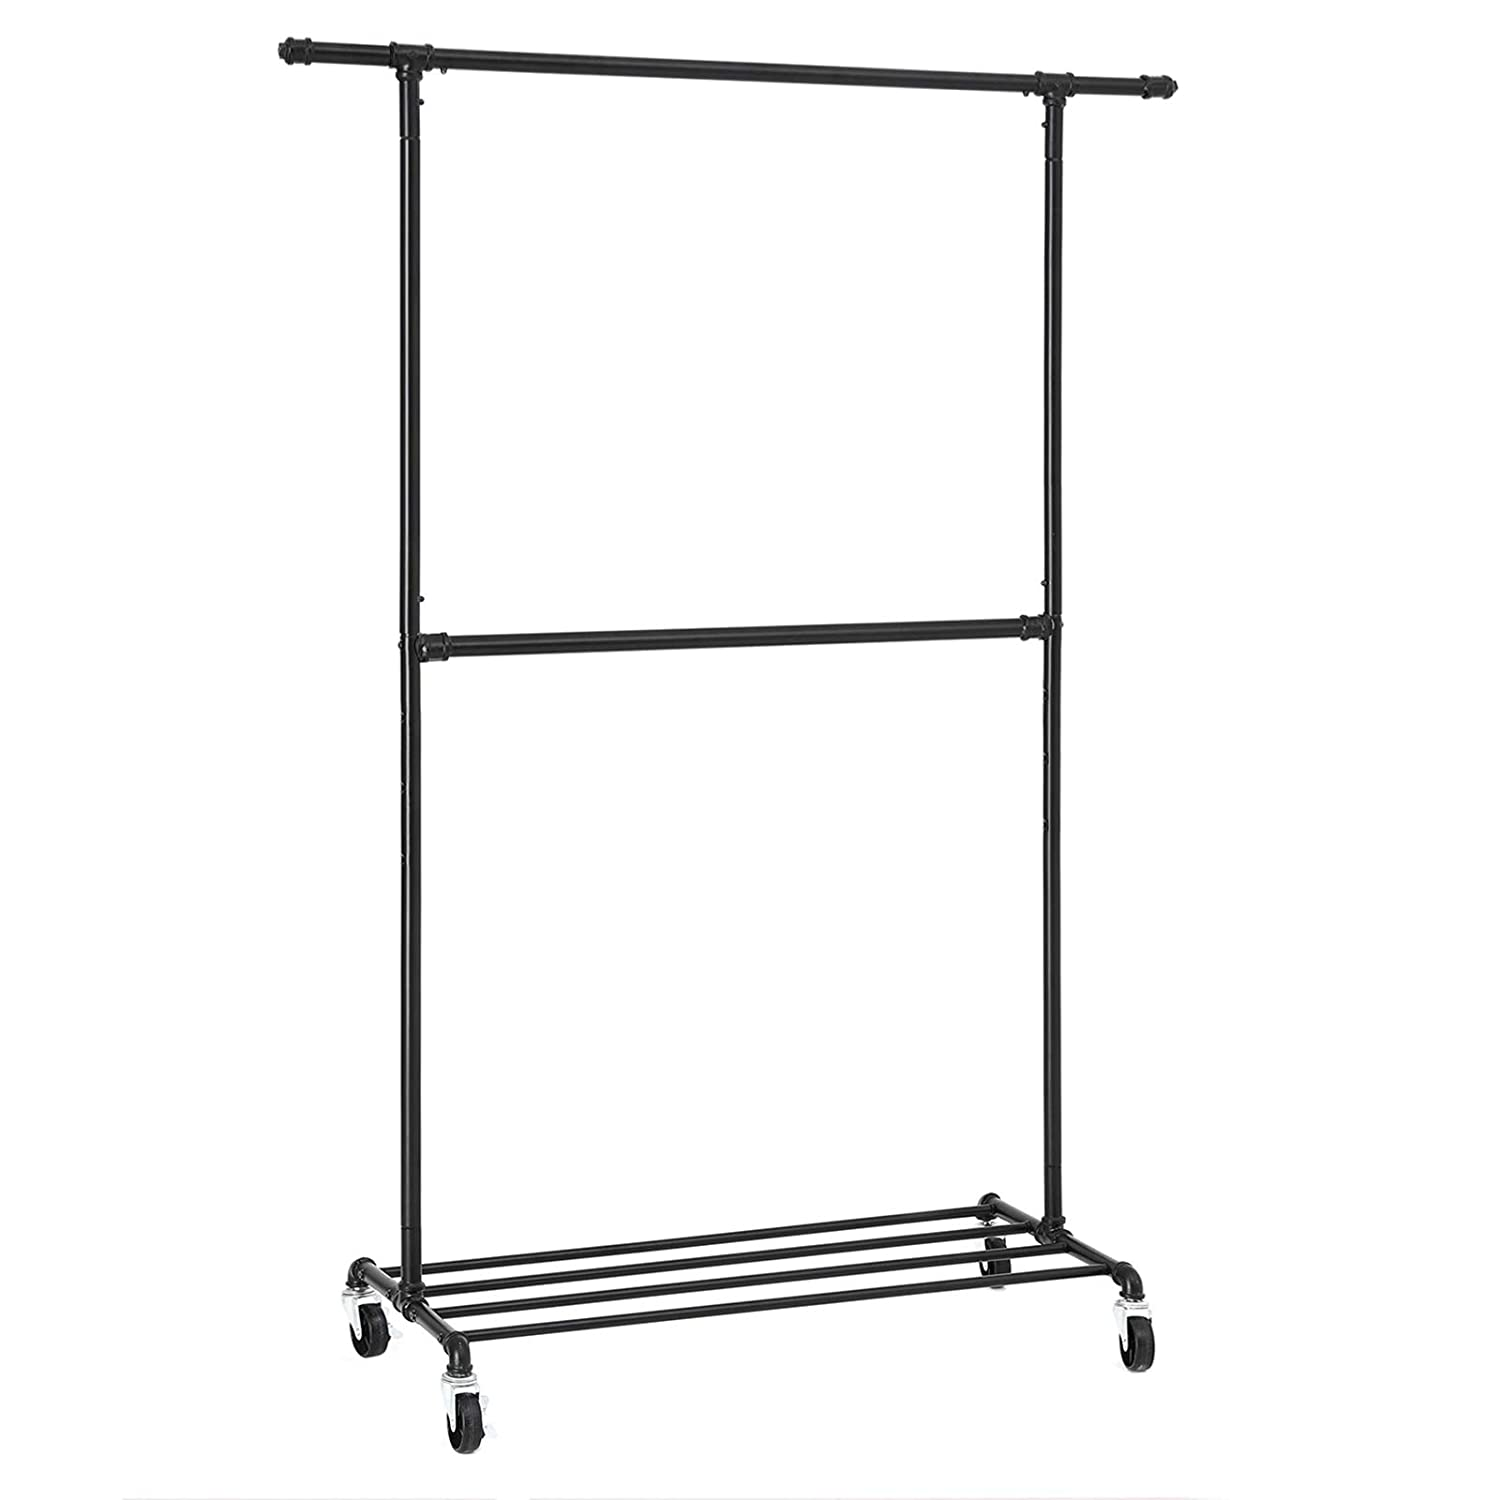 SONGMICS Industrial Style Clothes Garment Rack on Wheels, Double Hanging Rod Metal Clothing Rack, Heavy Duty Commercial Display, Black UHSR62BK